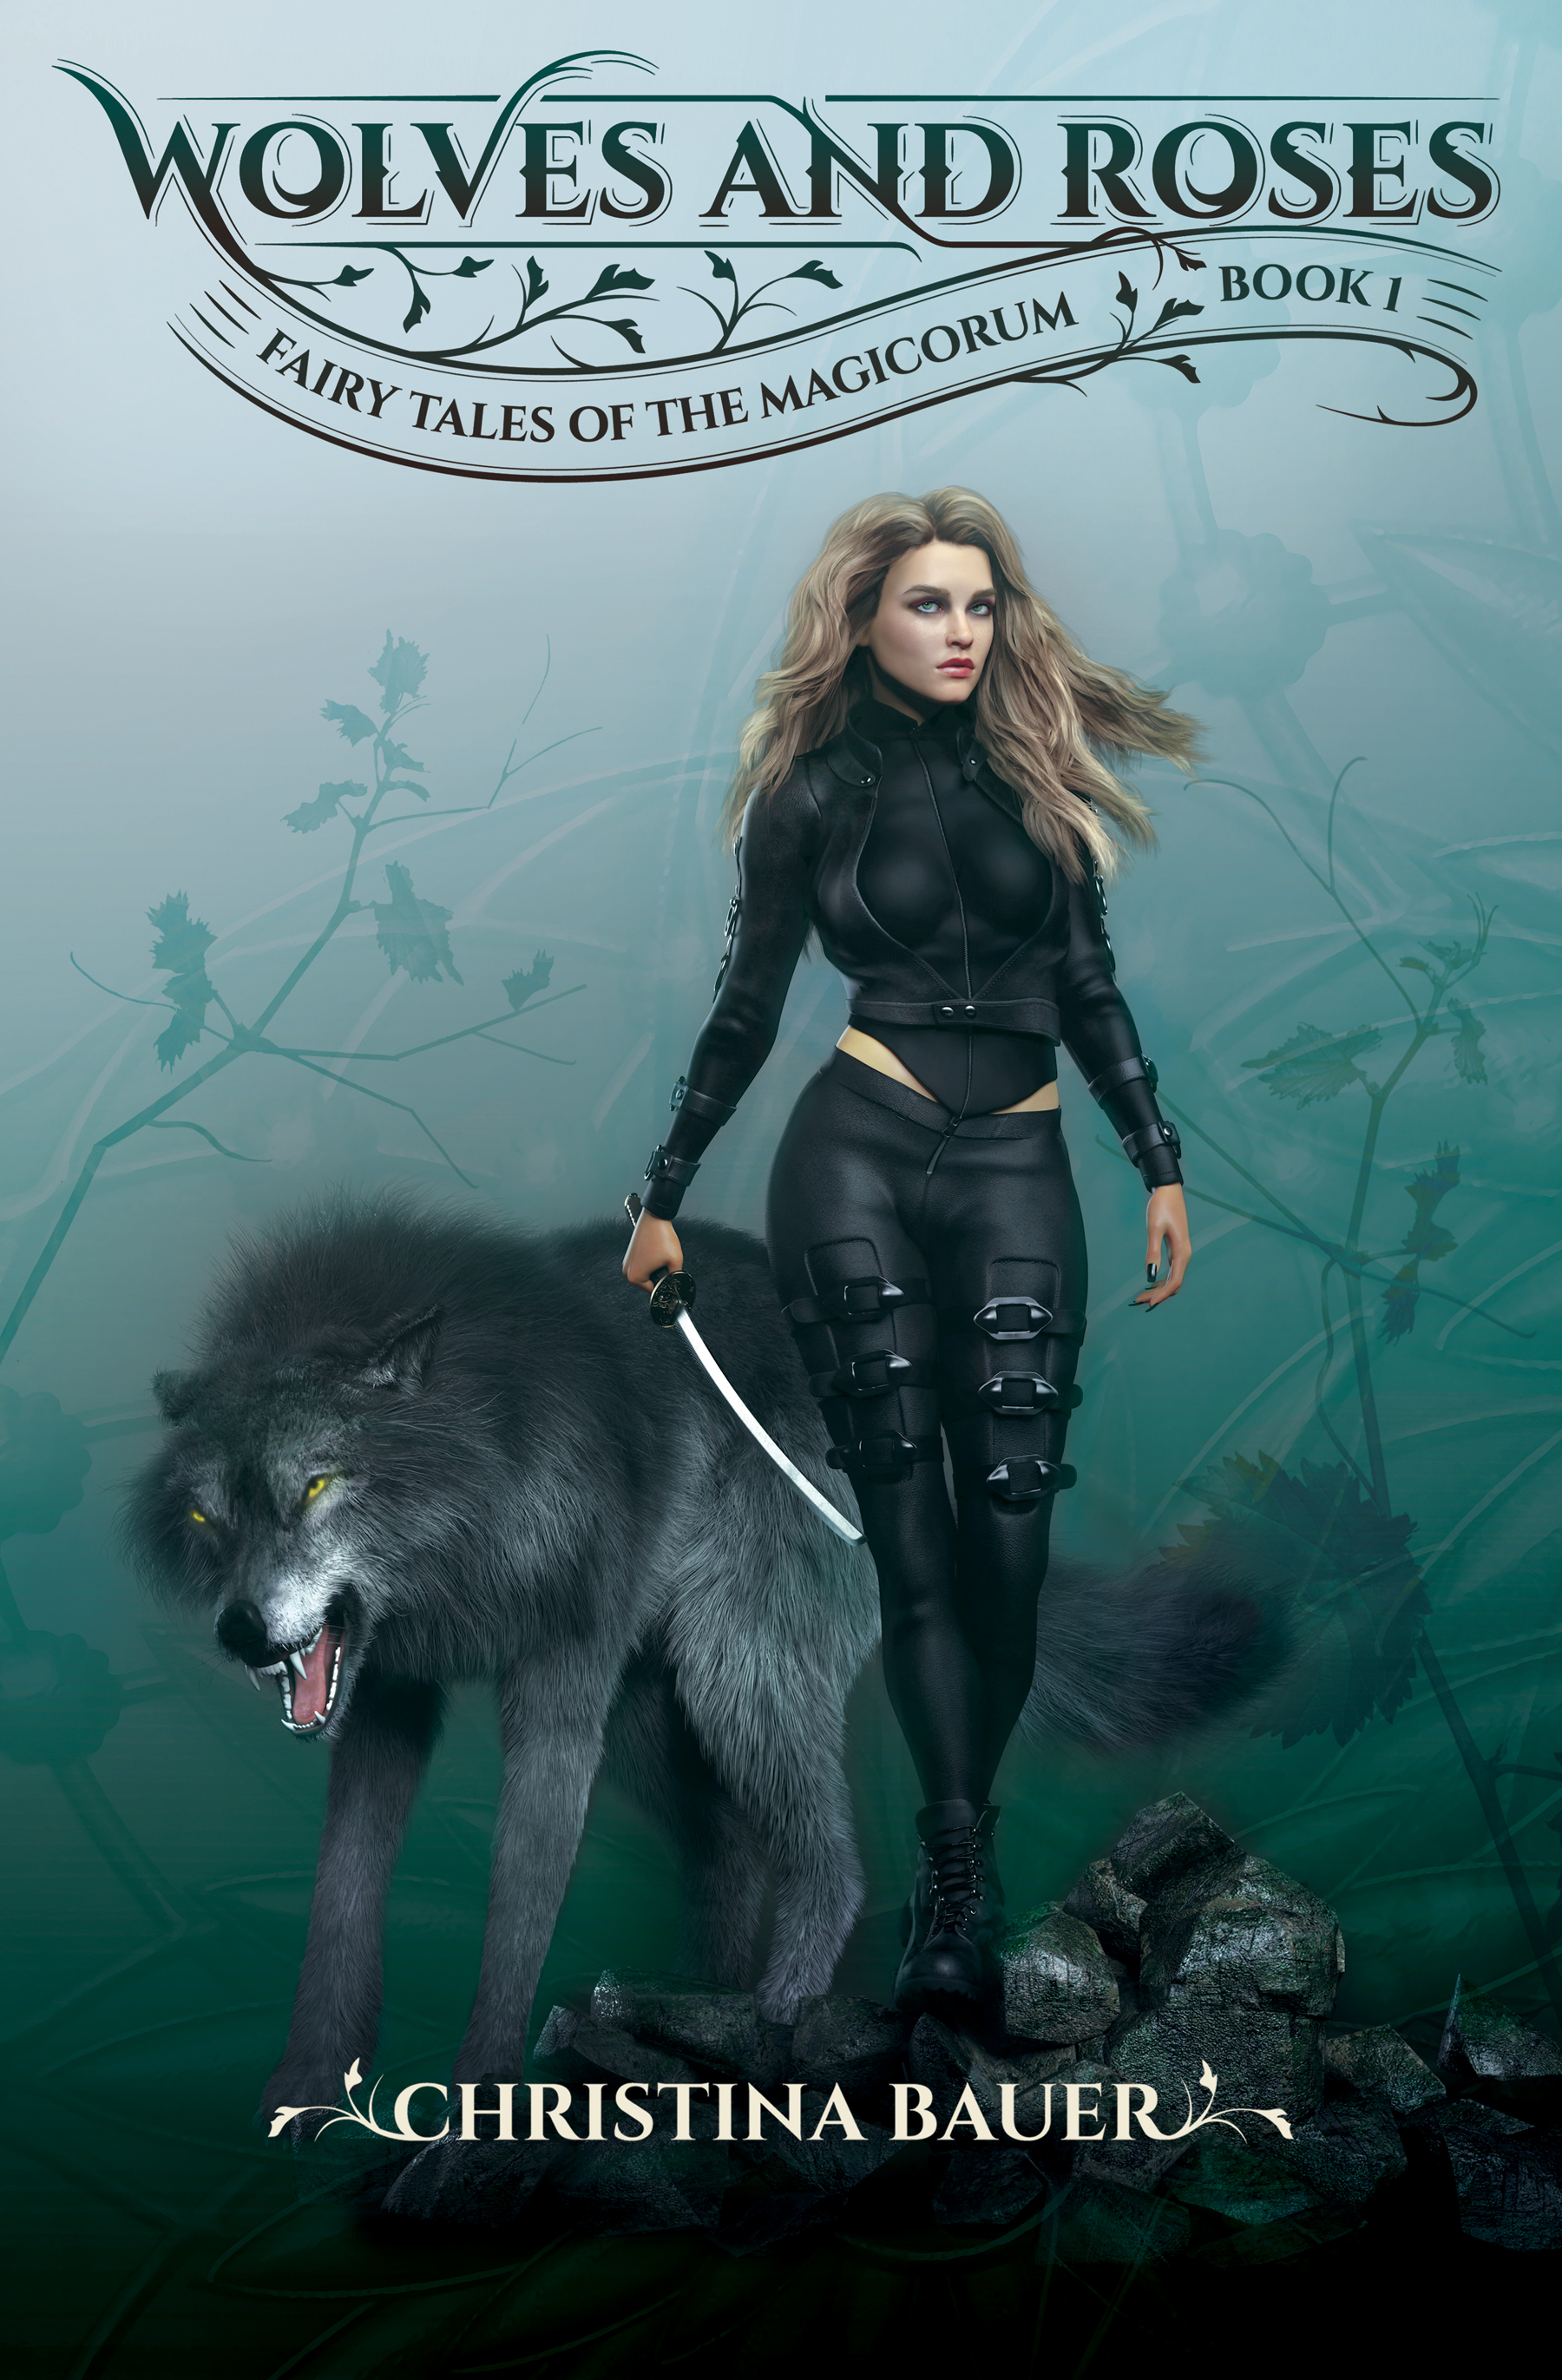 WOLVES AND ROSES (Book 1)